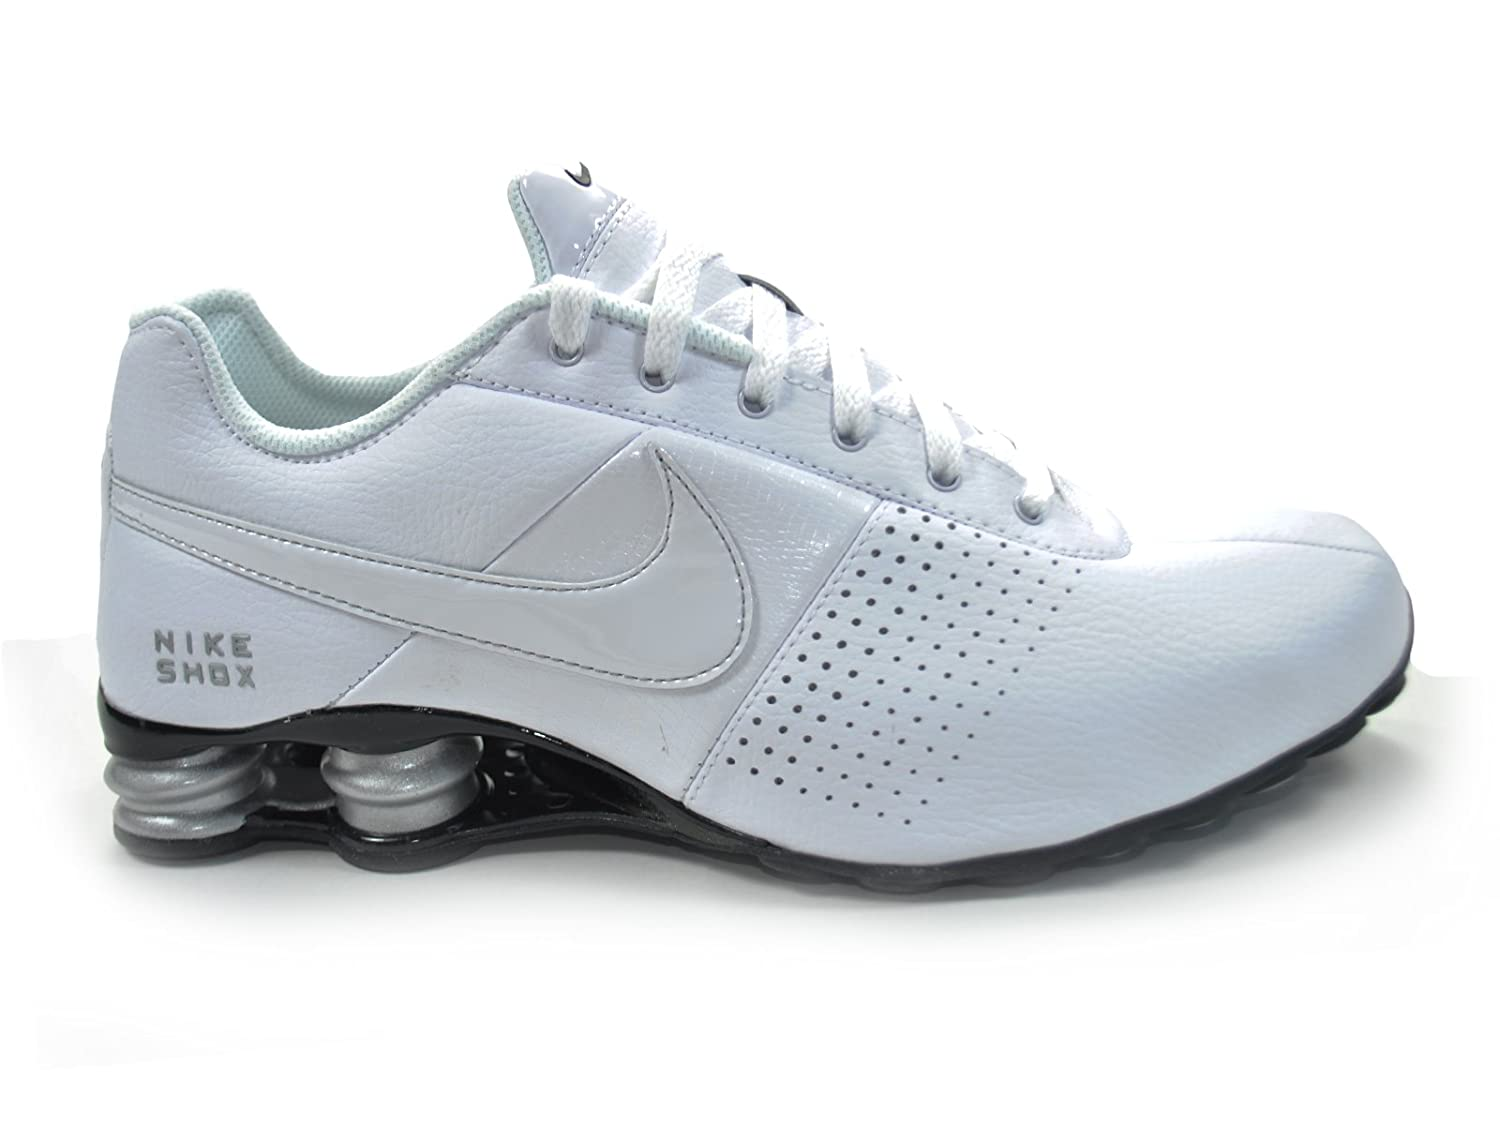 Nike Men's Shox Deliver White / White / Metallic Silver / Black Leather Running  Shoes 85